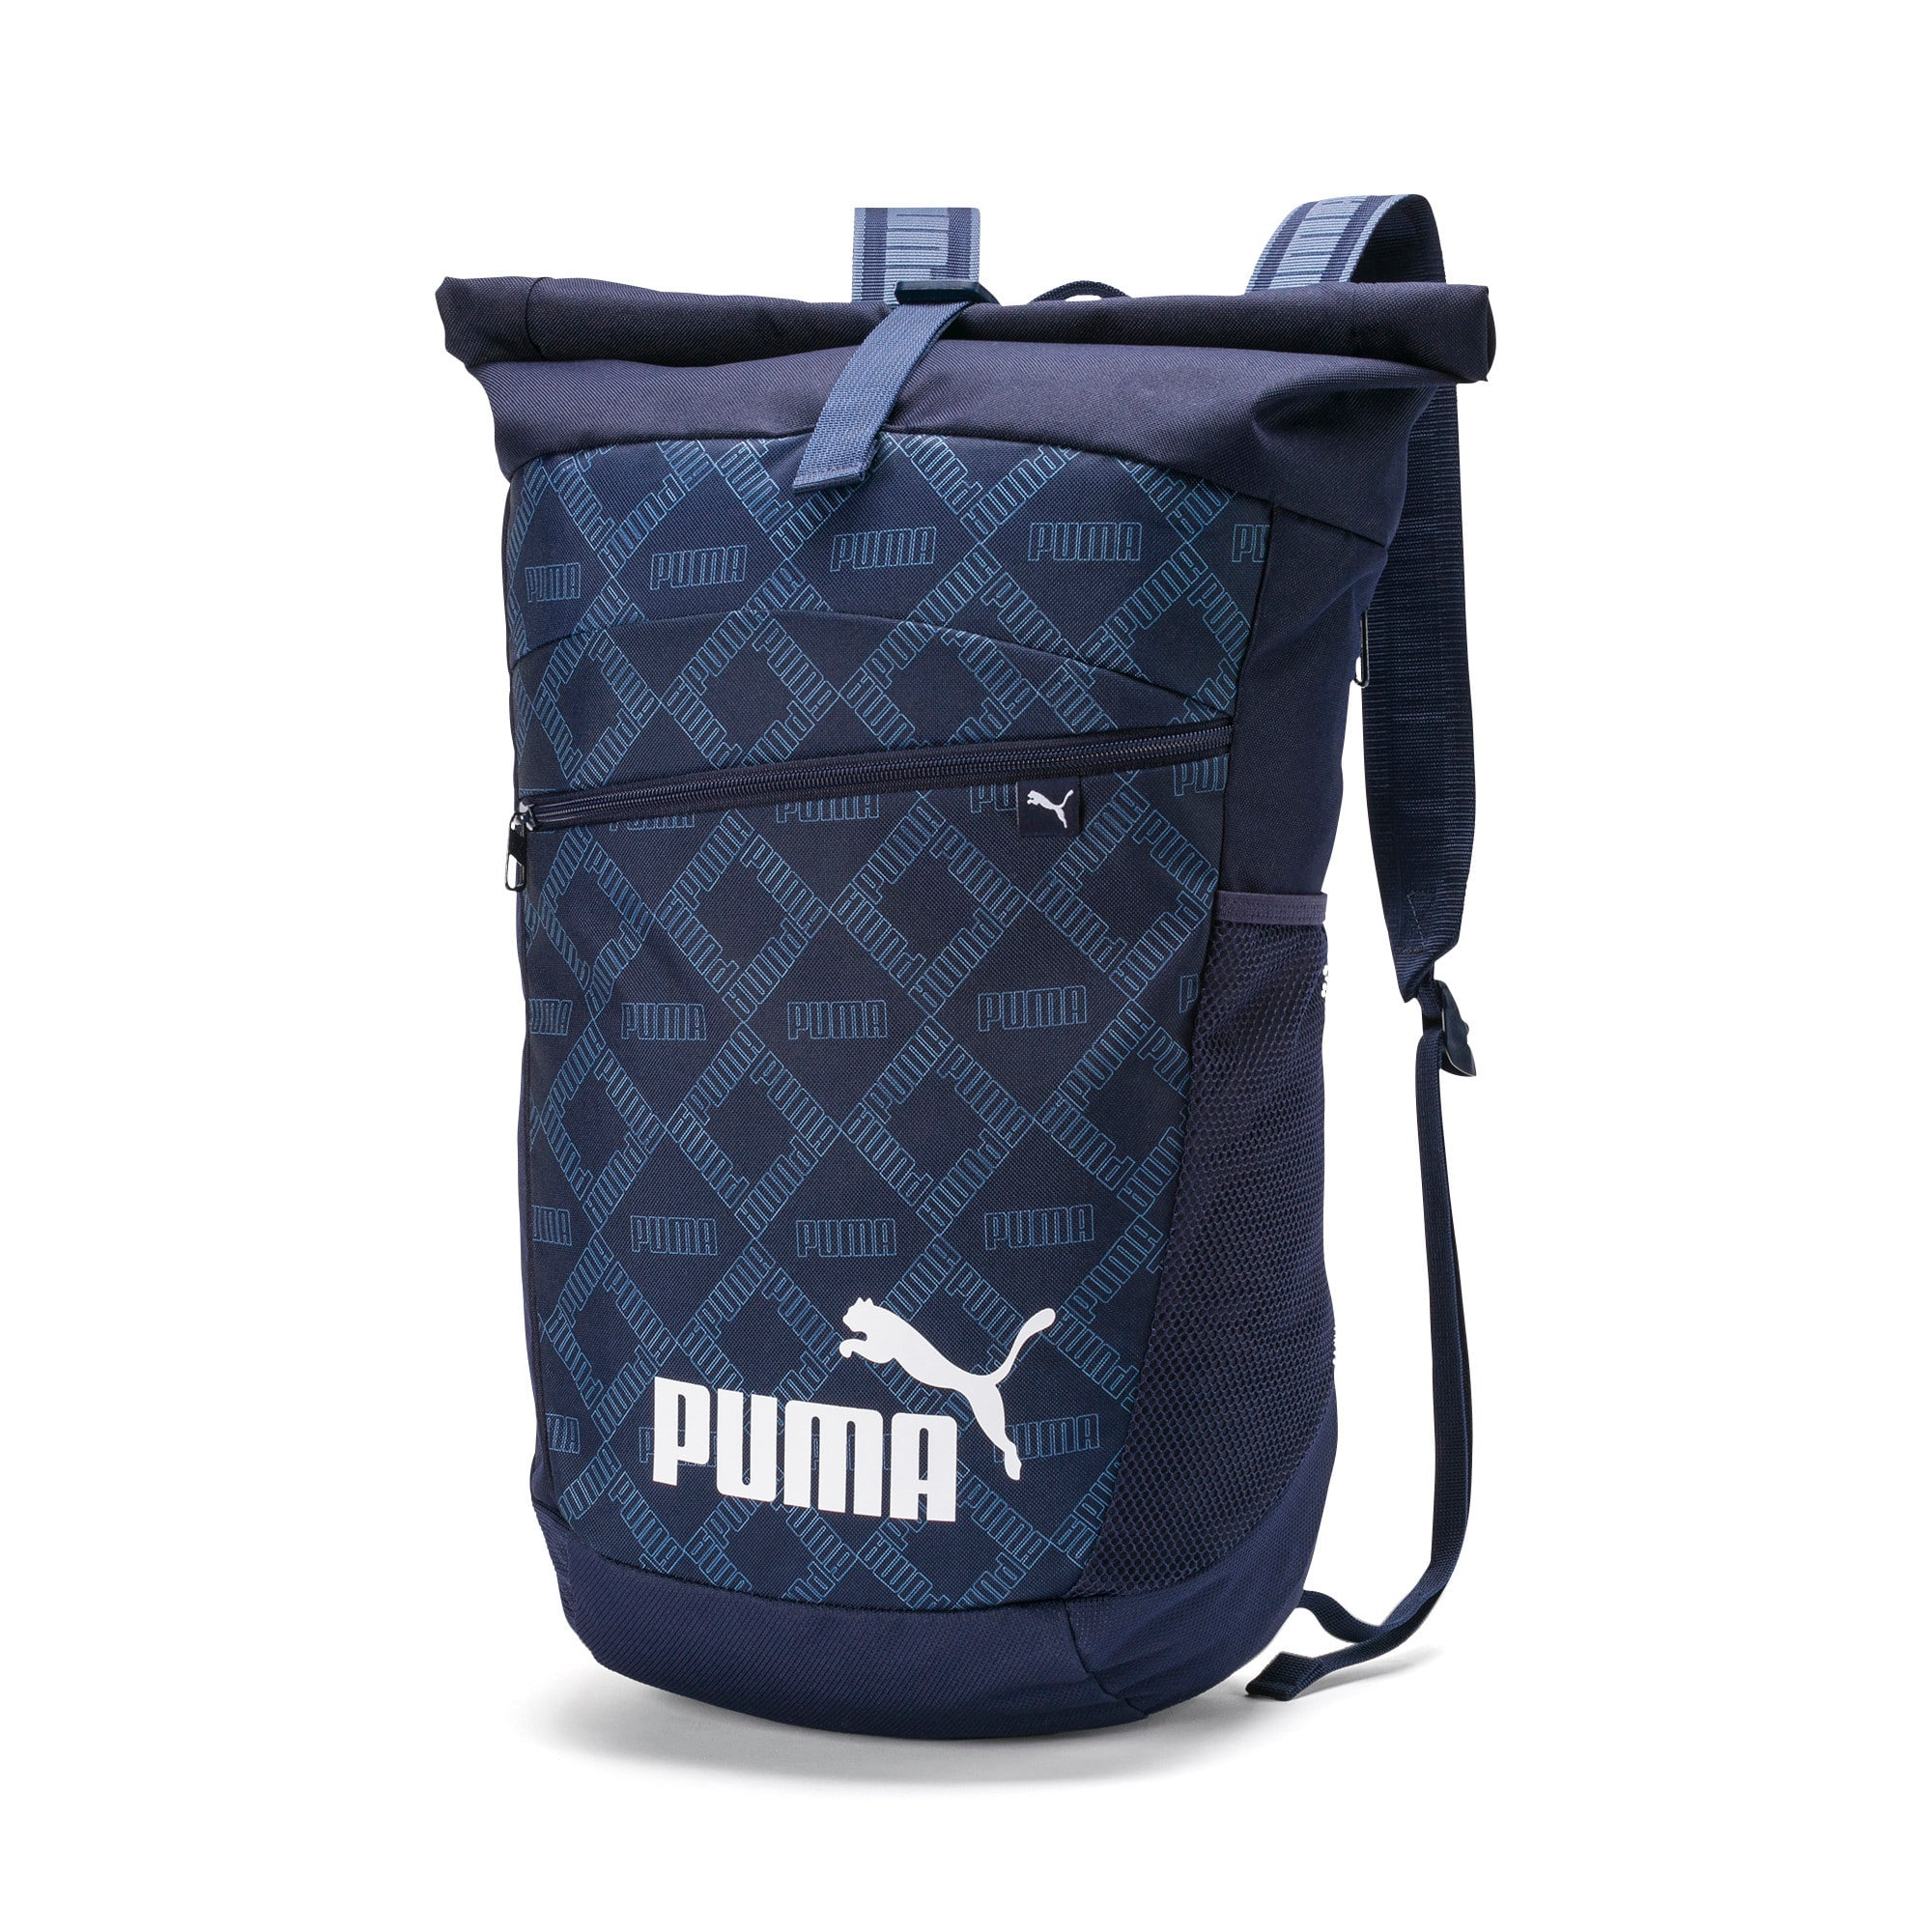 All-Over Printed Roll Top Backpack, Blauw/AOP | PUMA